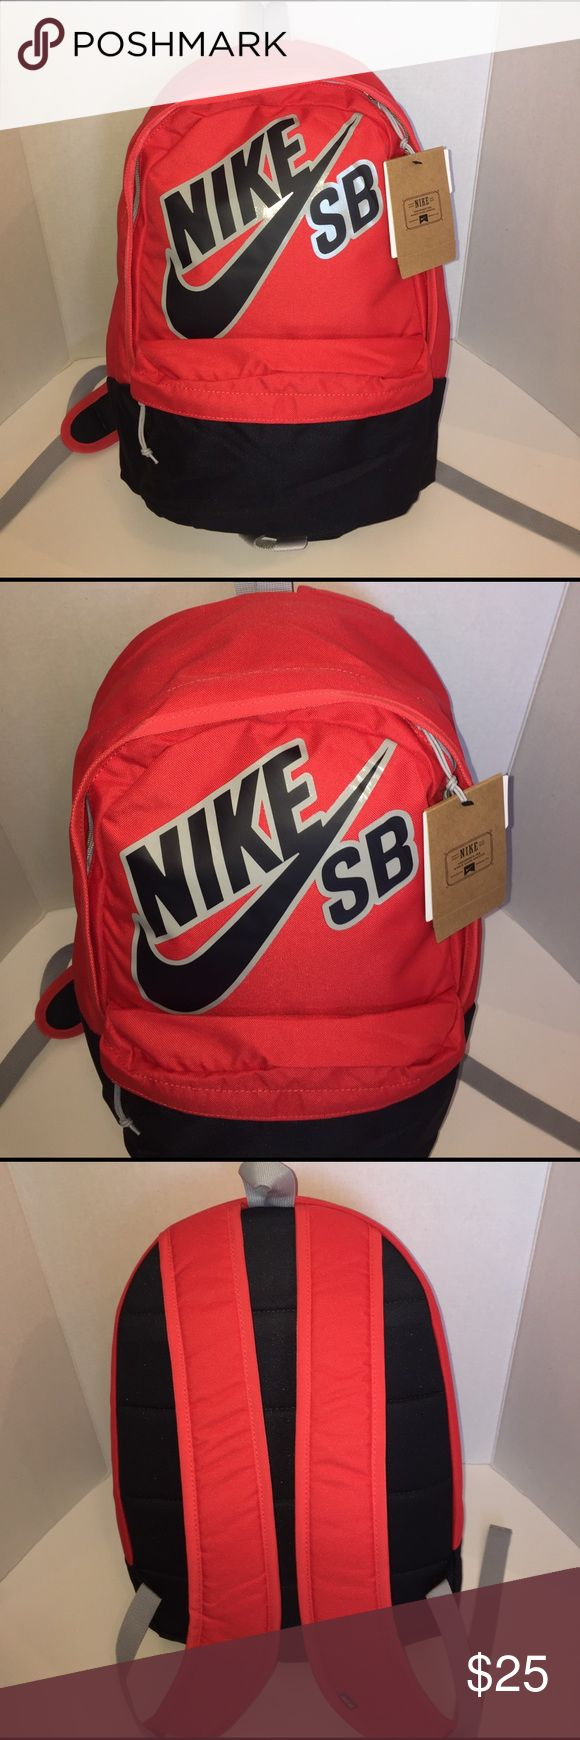 """Brand-new Nike SB backpack Brand-new with tags. Nike SB backpack. Capacity: 1587 cu in. Color: red/black. Large main zippered compartment. Smaller front stash pocket with organizer. Measures approximately 17.5"""" x 14"""" Nike Accessories Bags"""